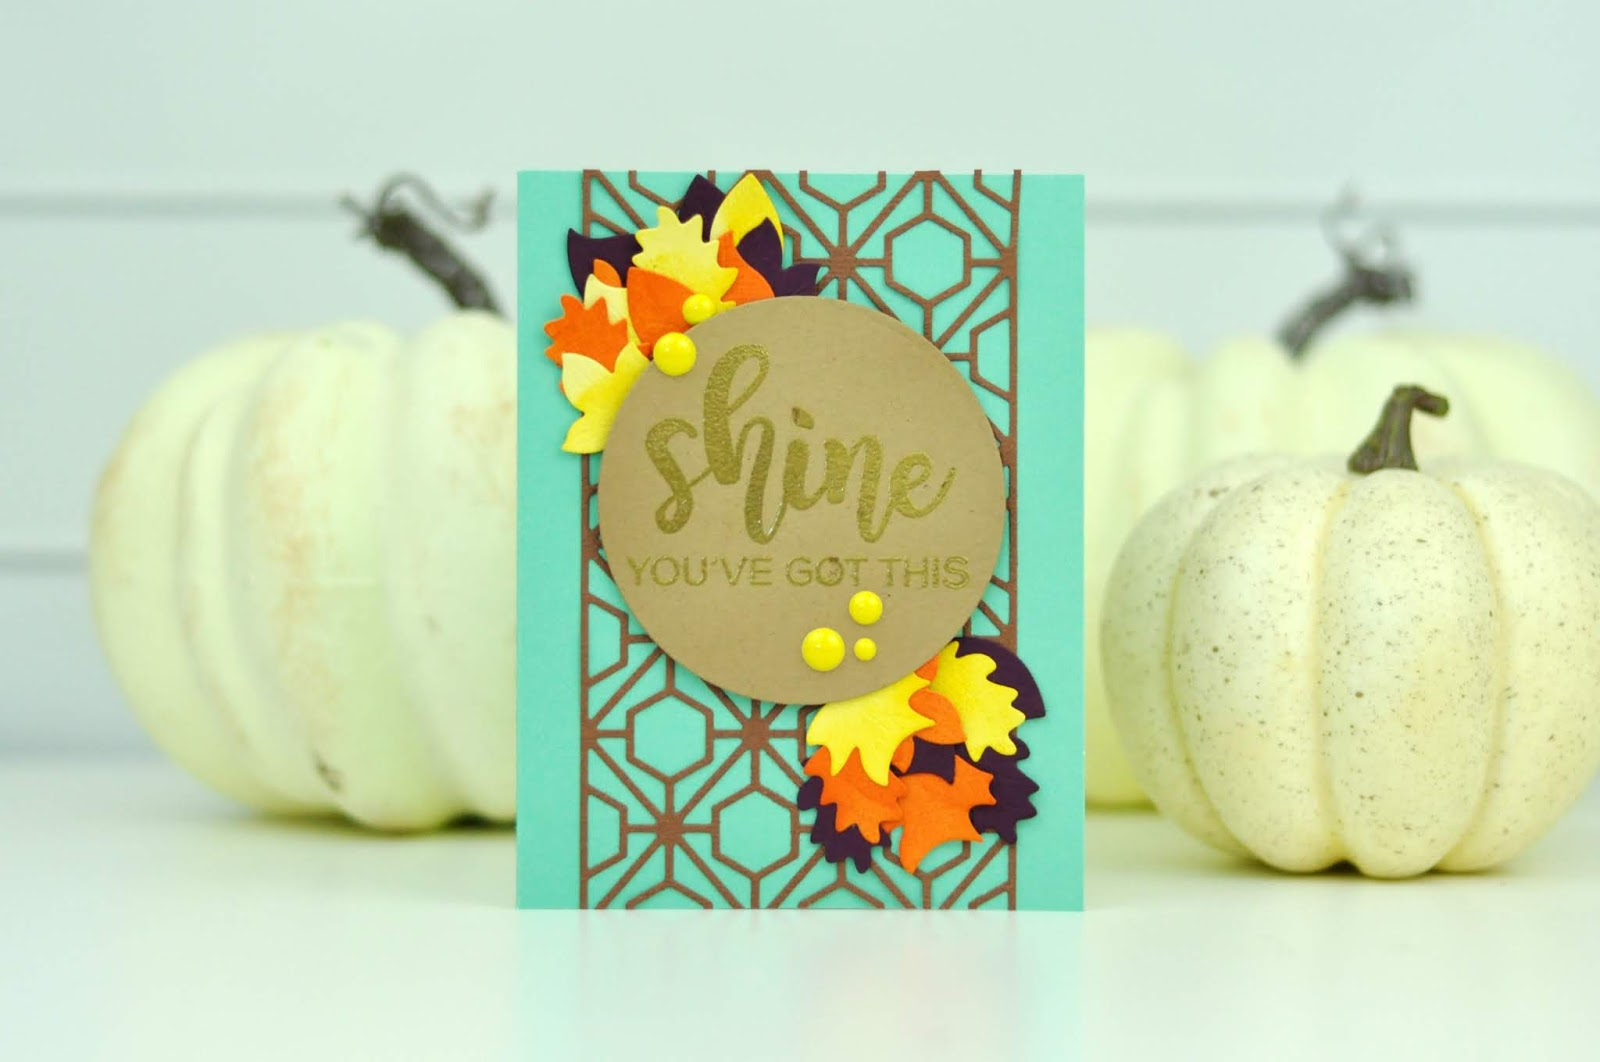 Spellbinders Shine Autumn Card